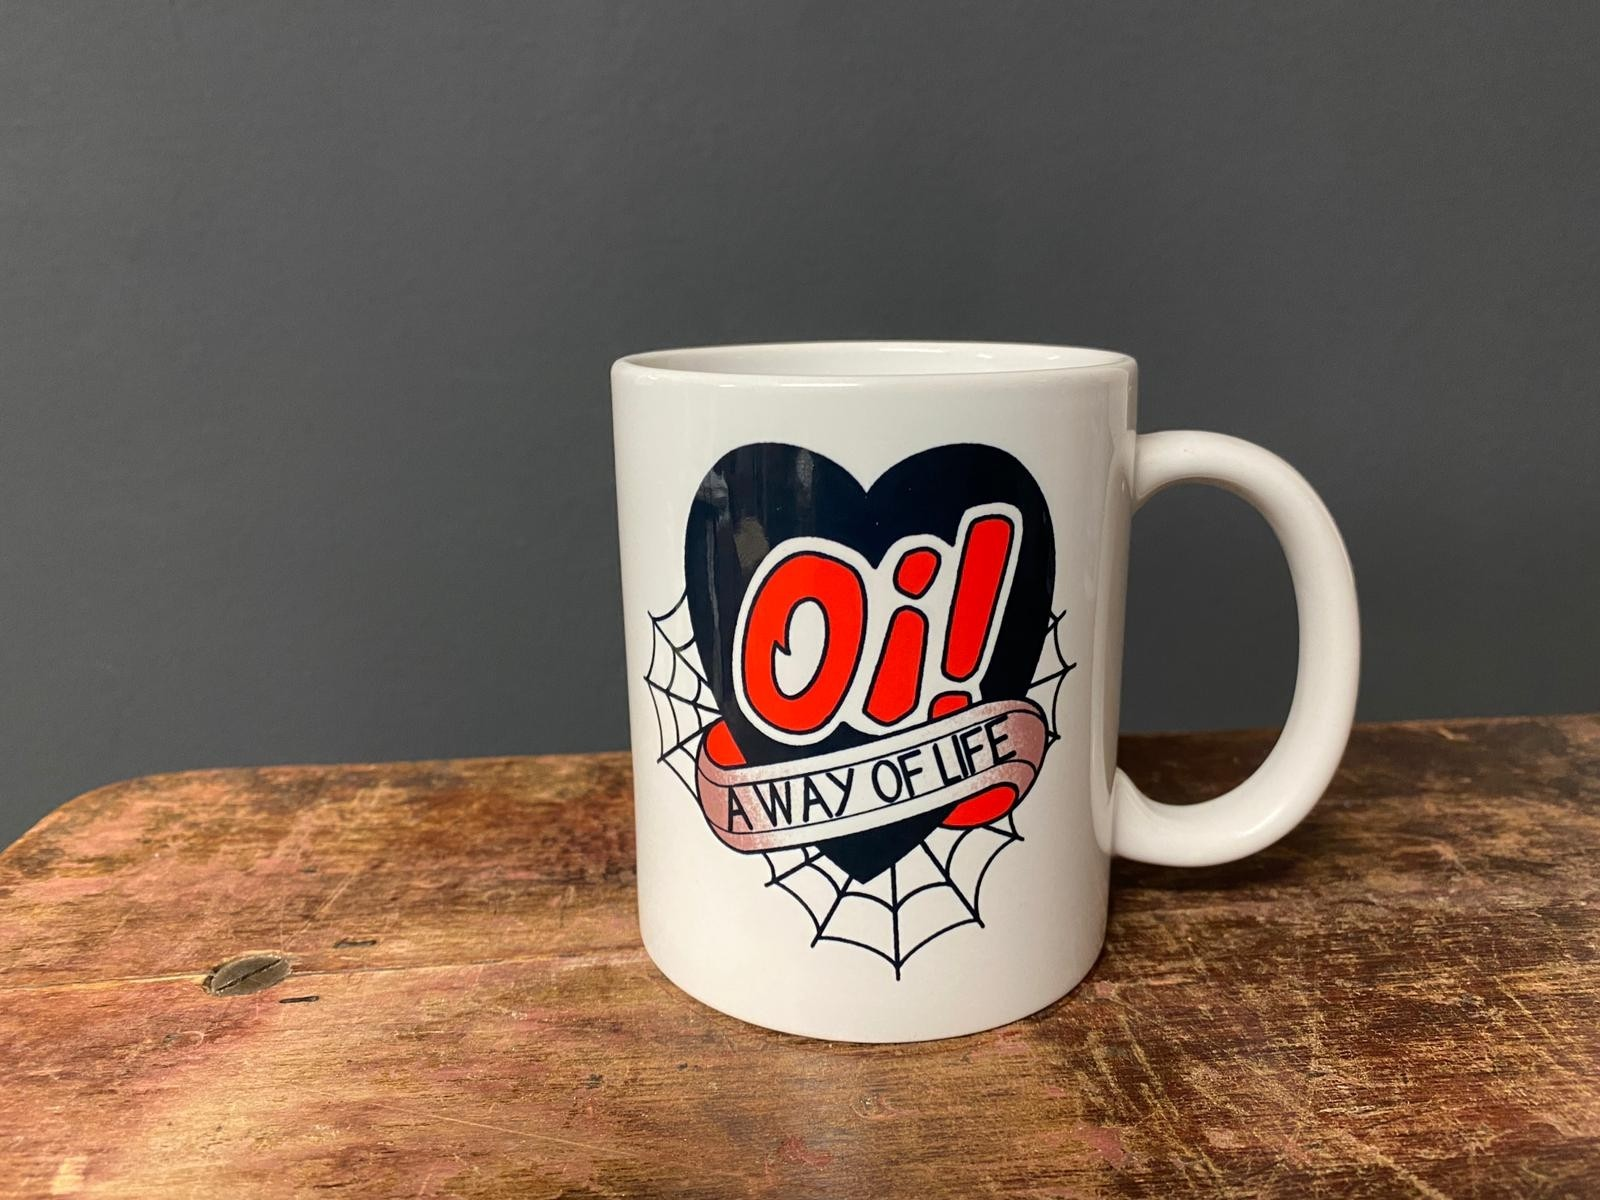 Oi! A way Of Life - Tasse/Mug